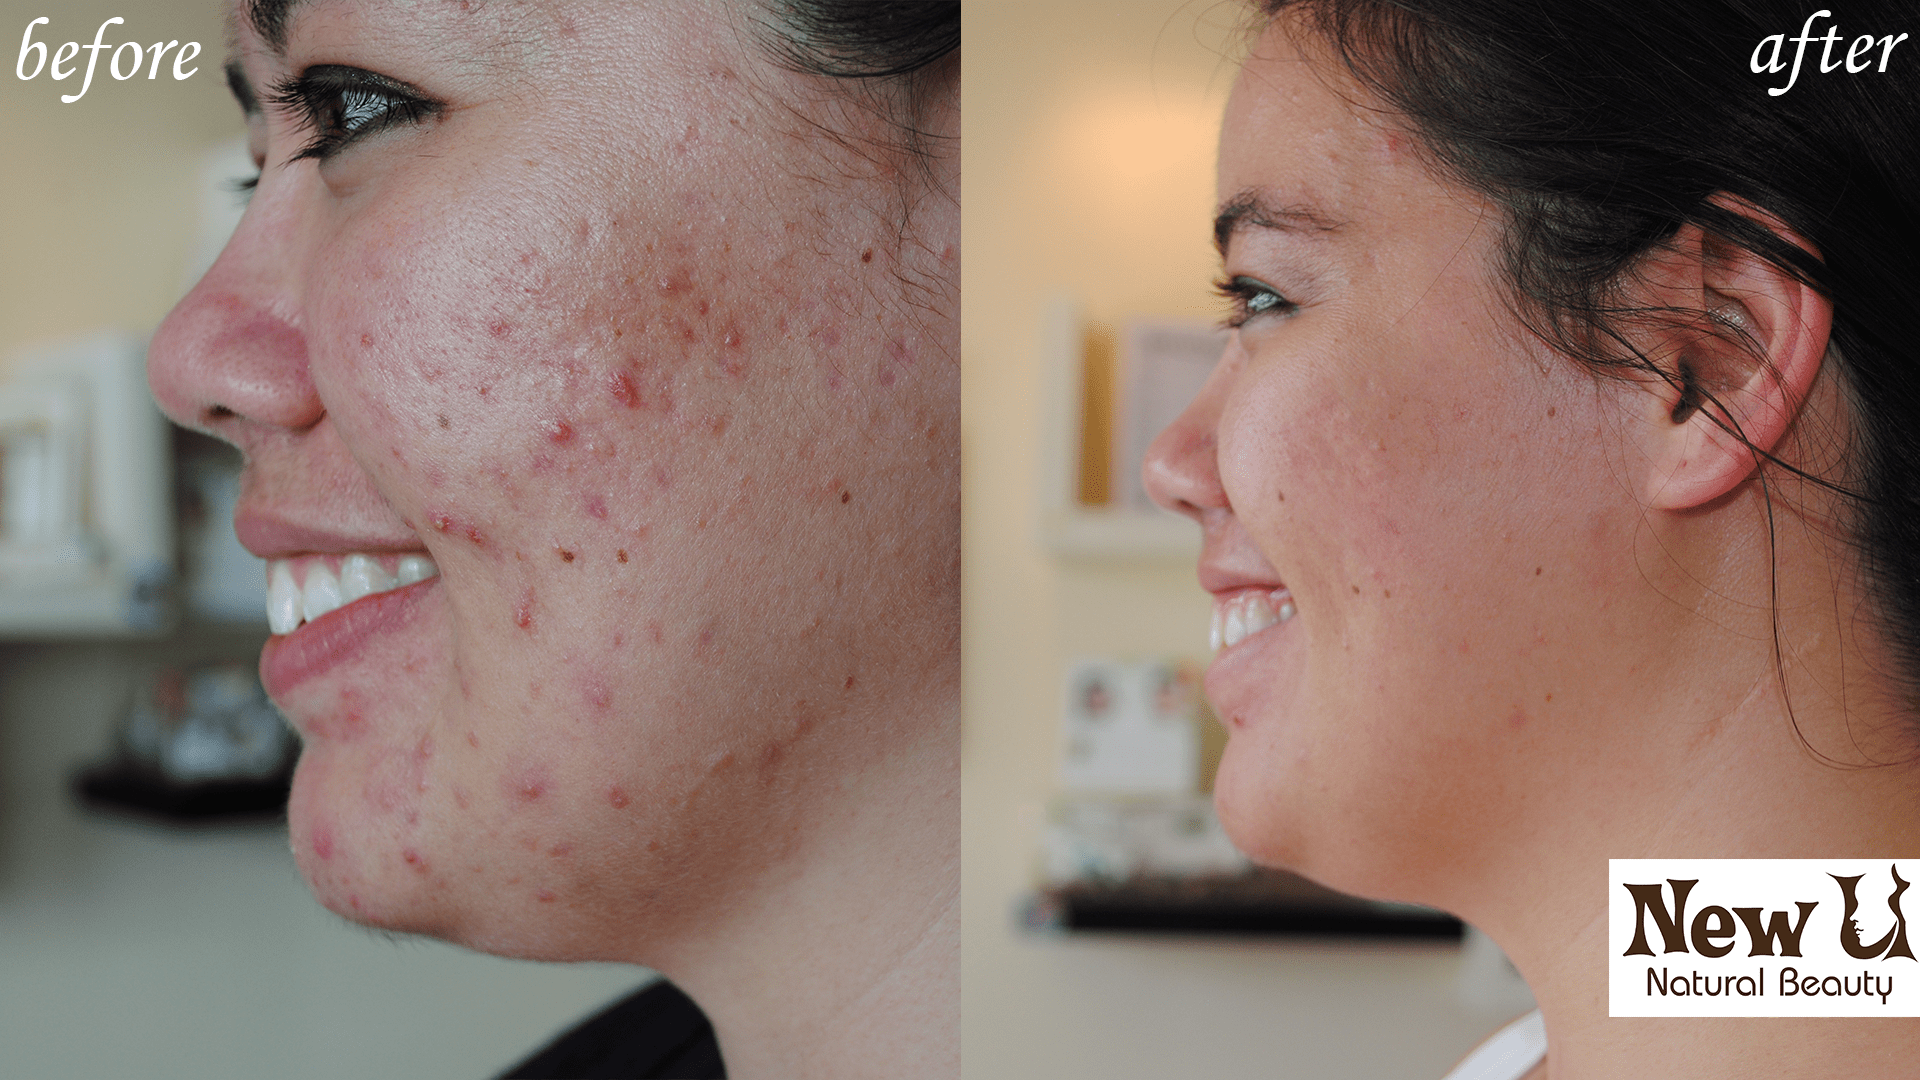 Acne Treatment 3 Las Vegas Before and After